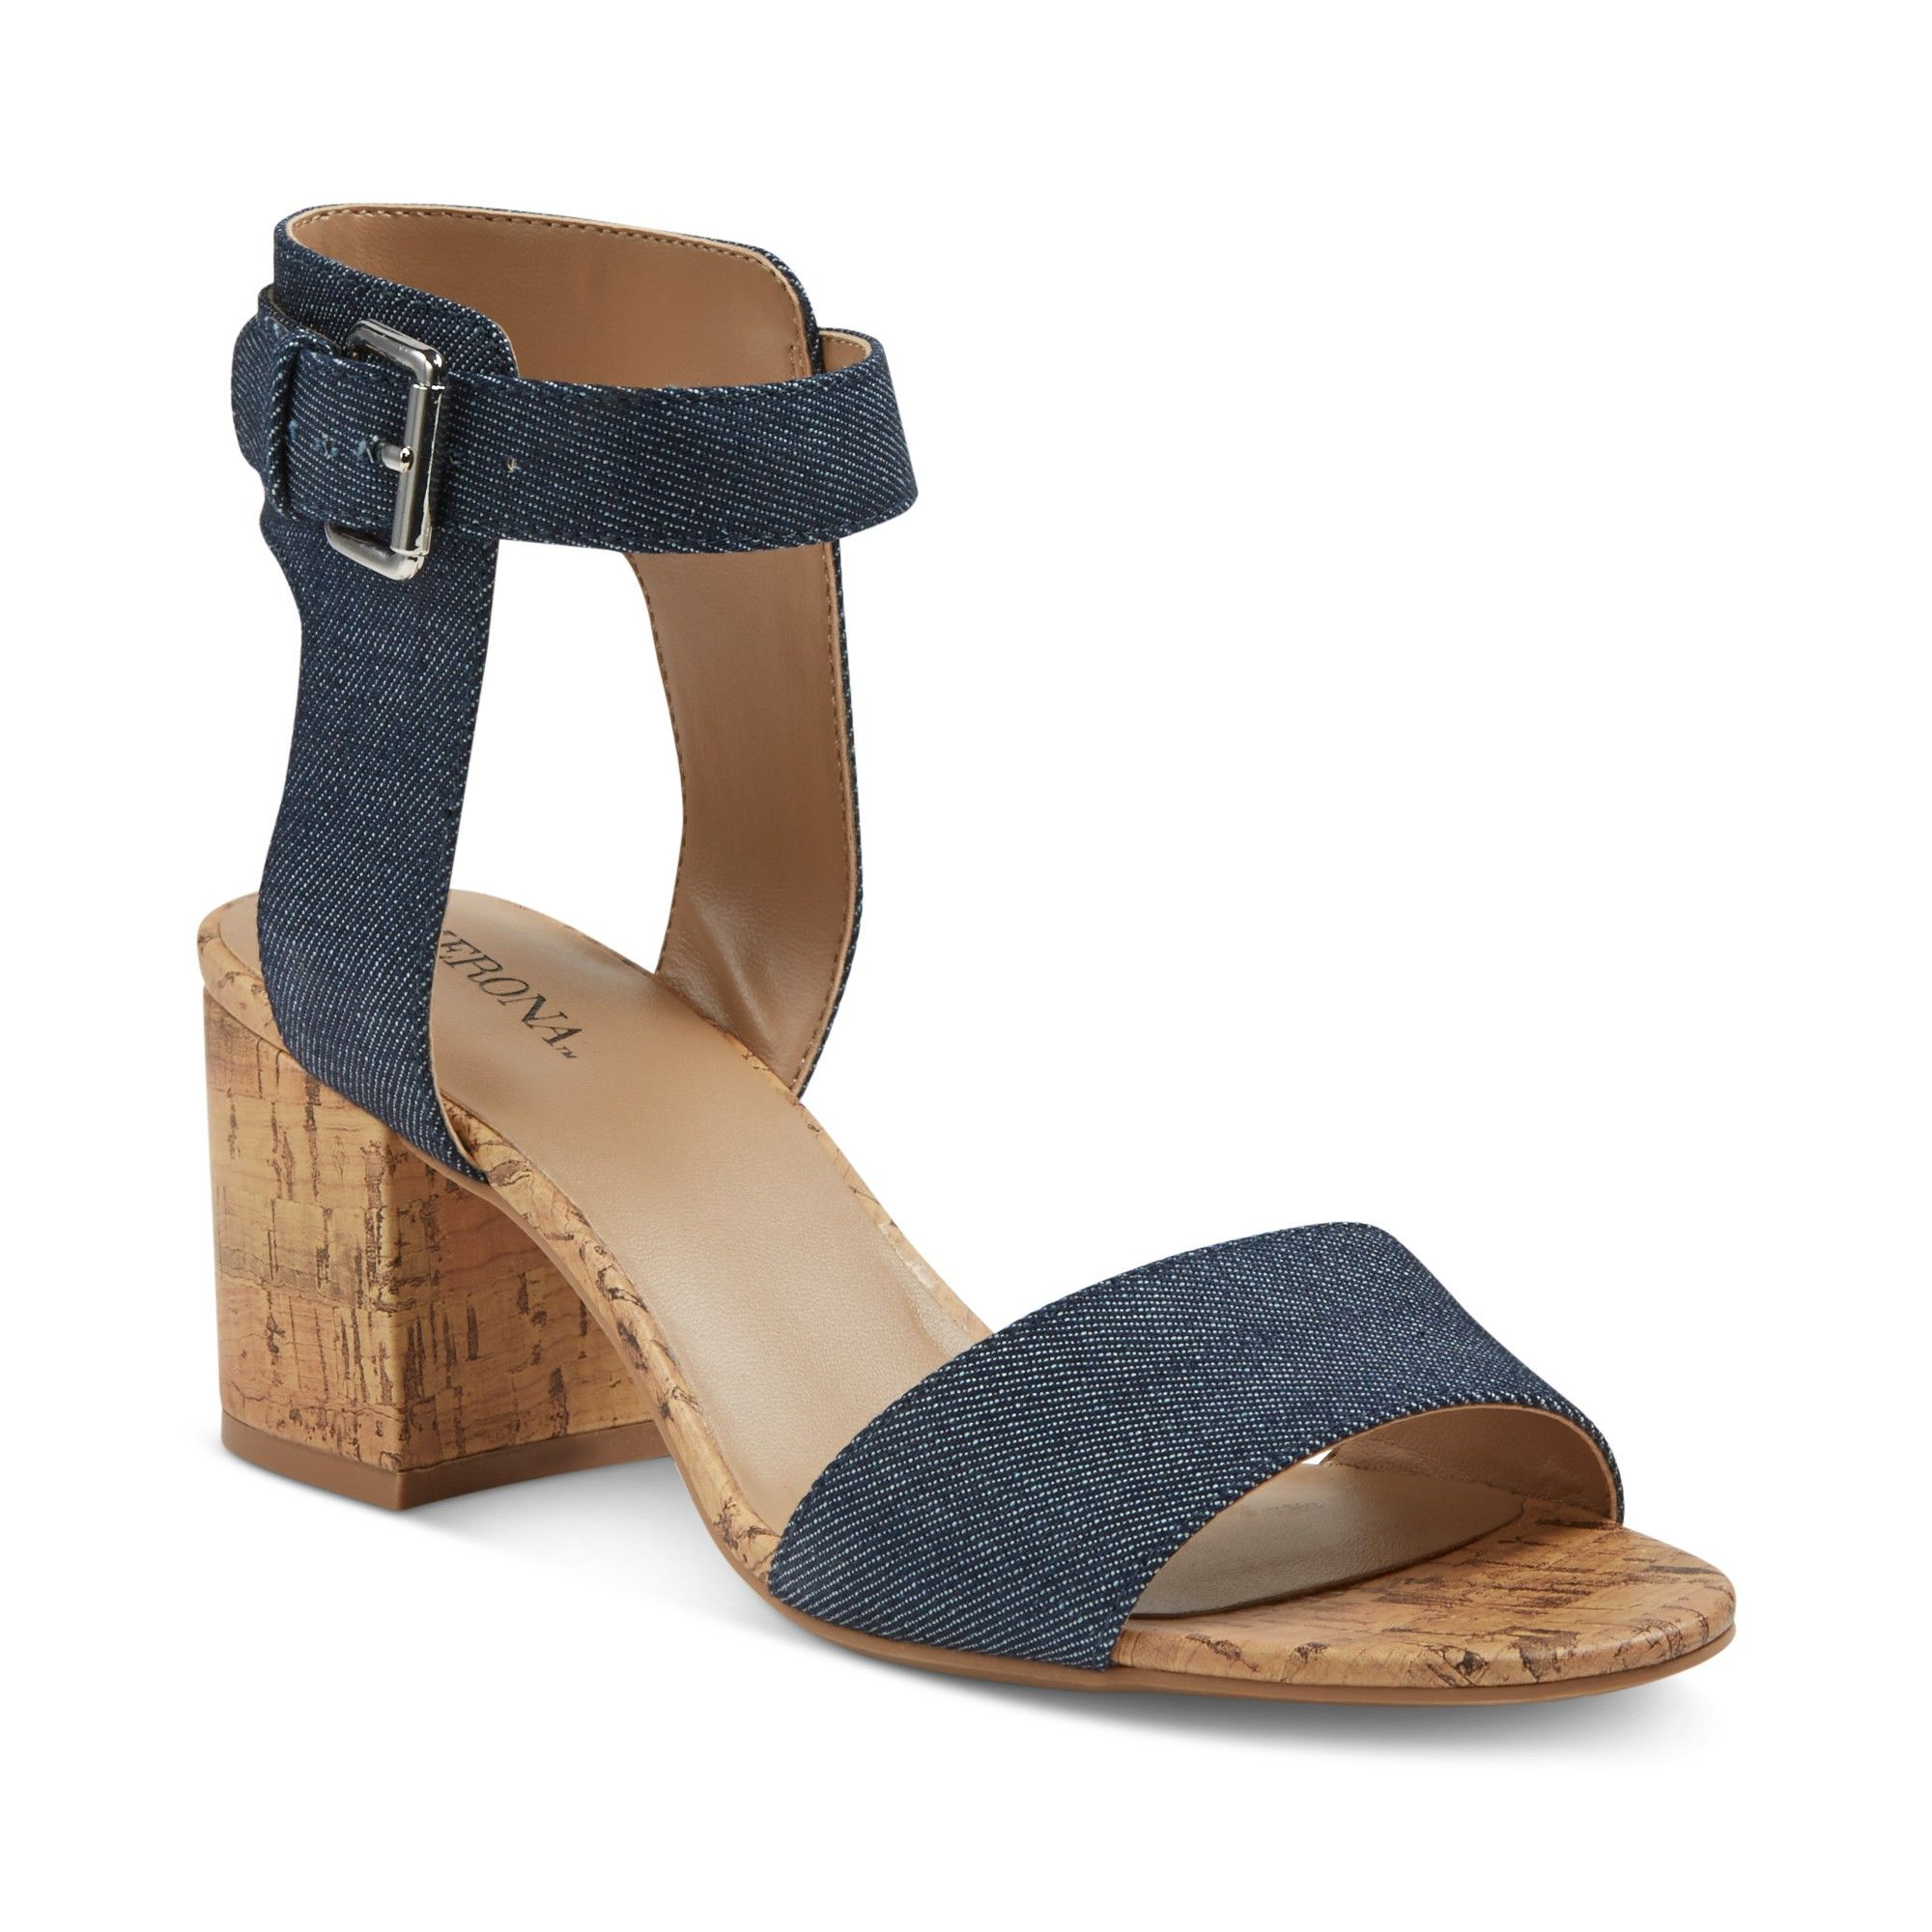 bf552ee0f533a8 Women s Talia Quarter Strap Cork Heel Sandals - Merona Denim 7.5